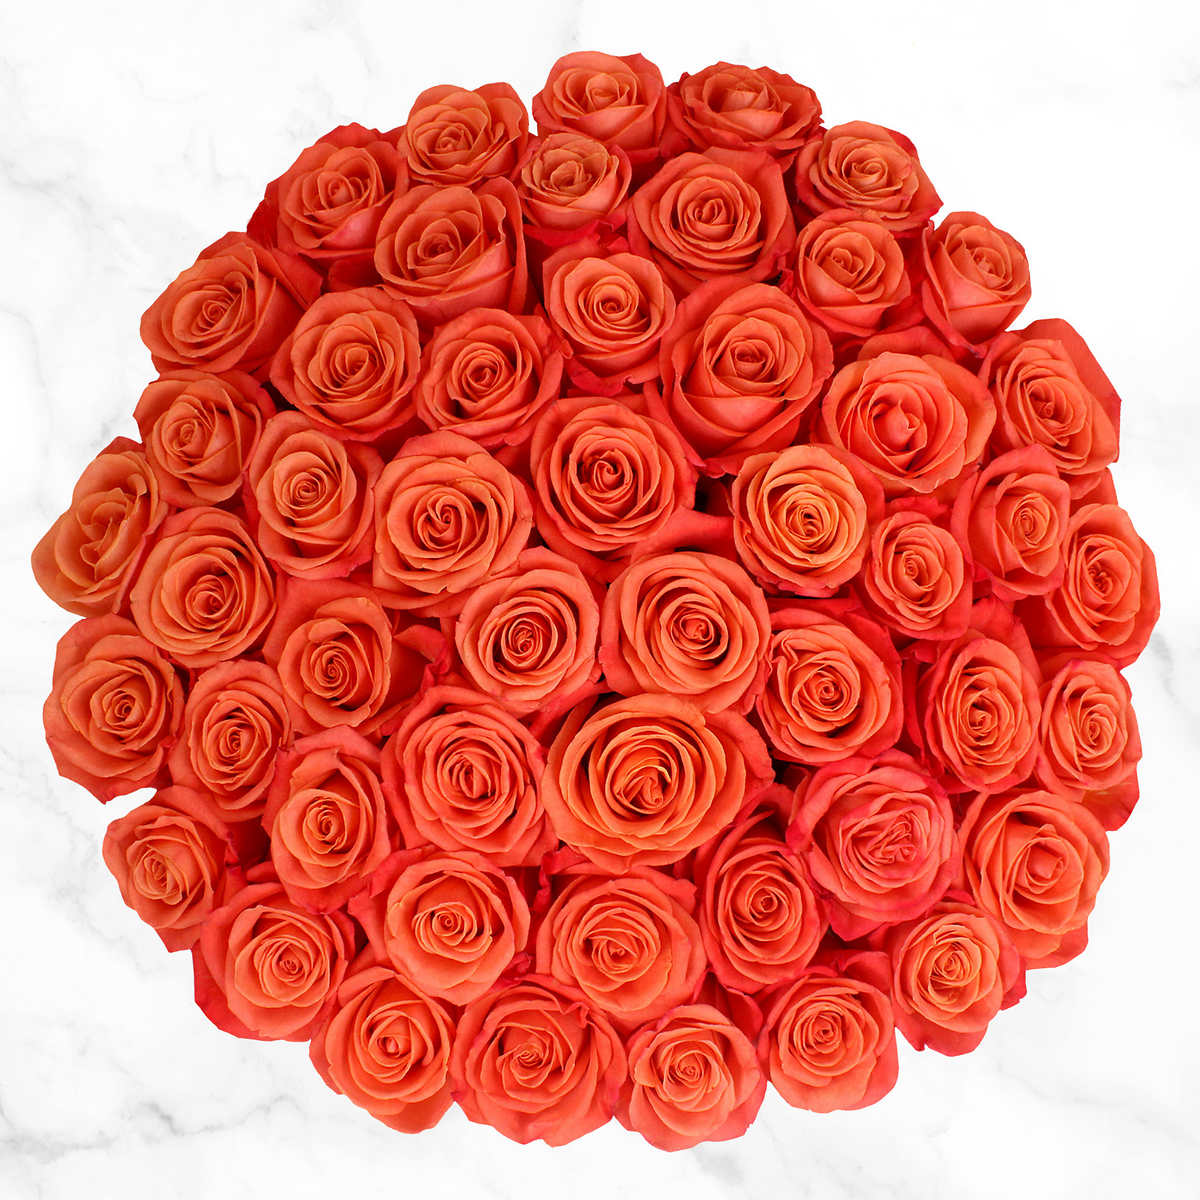 Home bulk roses peach roses - 50 Stem Orange Roses Item 1183433 Click To Zoom